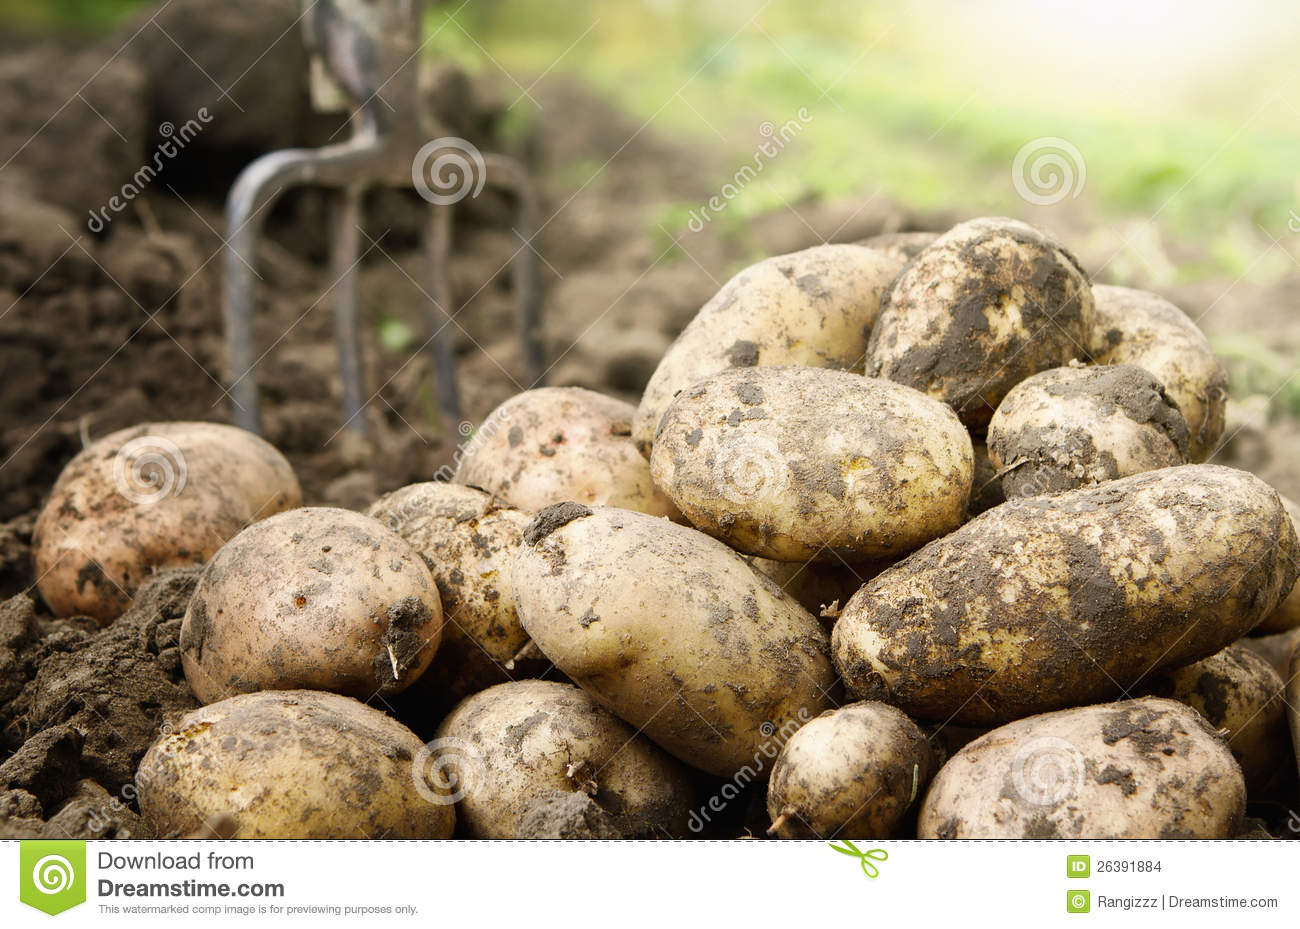 Download Potatoes in the field stock photo. Image of fries, food - 26391884